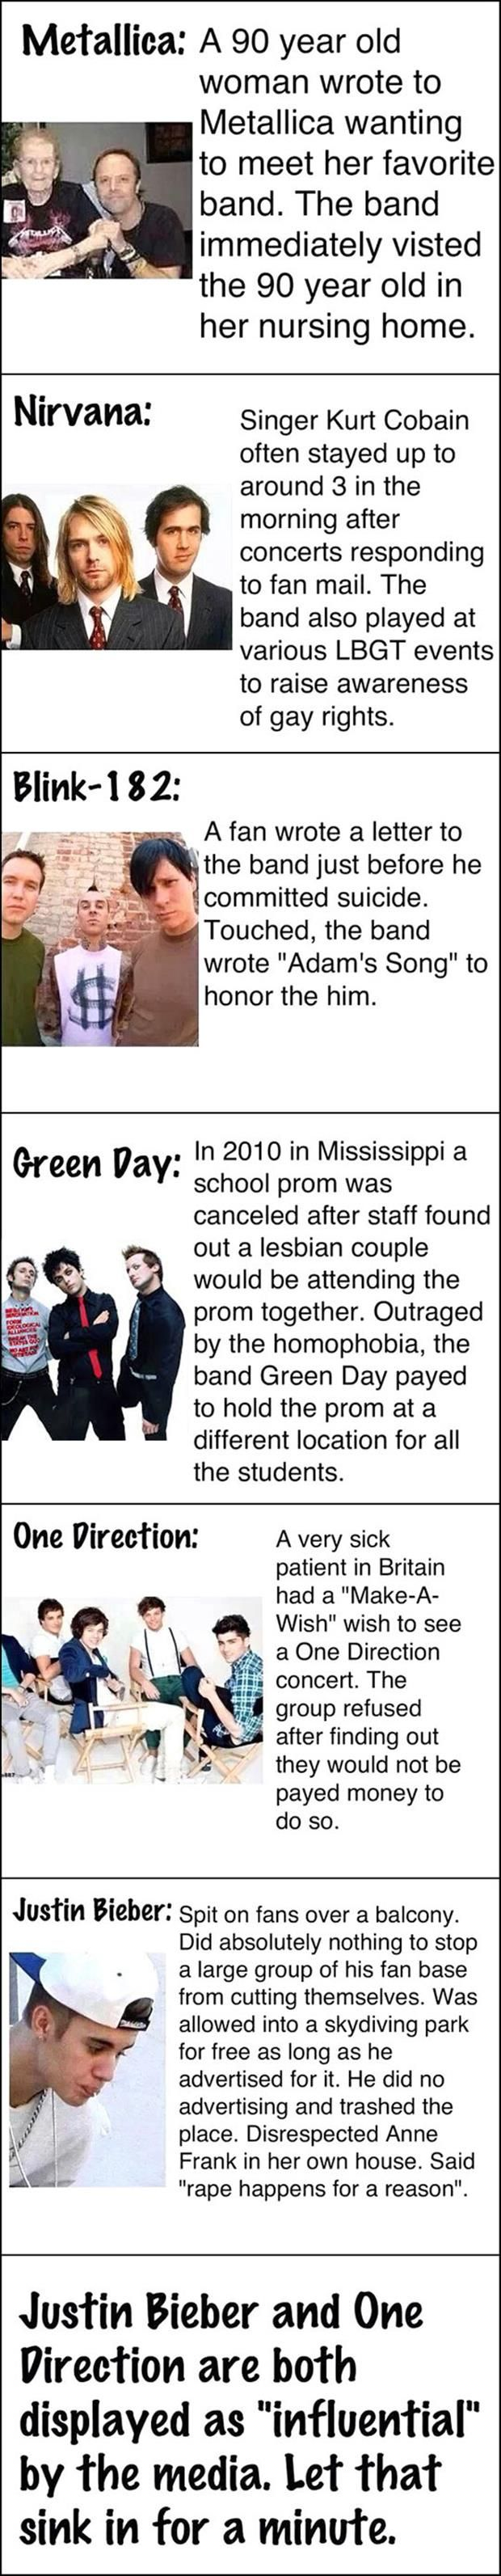 I was really shocked and surprised when i read the last 2. Though i nvr liked either of them (i am a fan of the others) i nvr really hated 1D or Justin Bieber till now